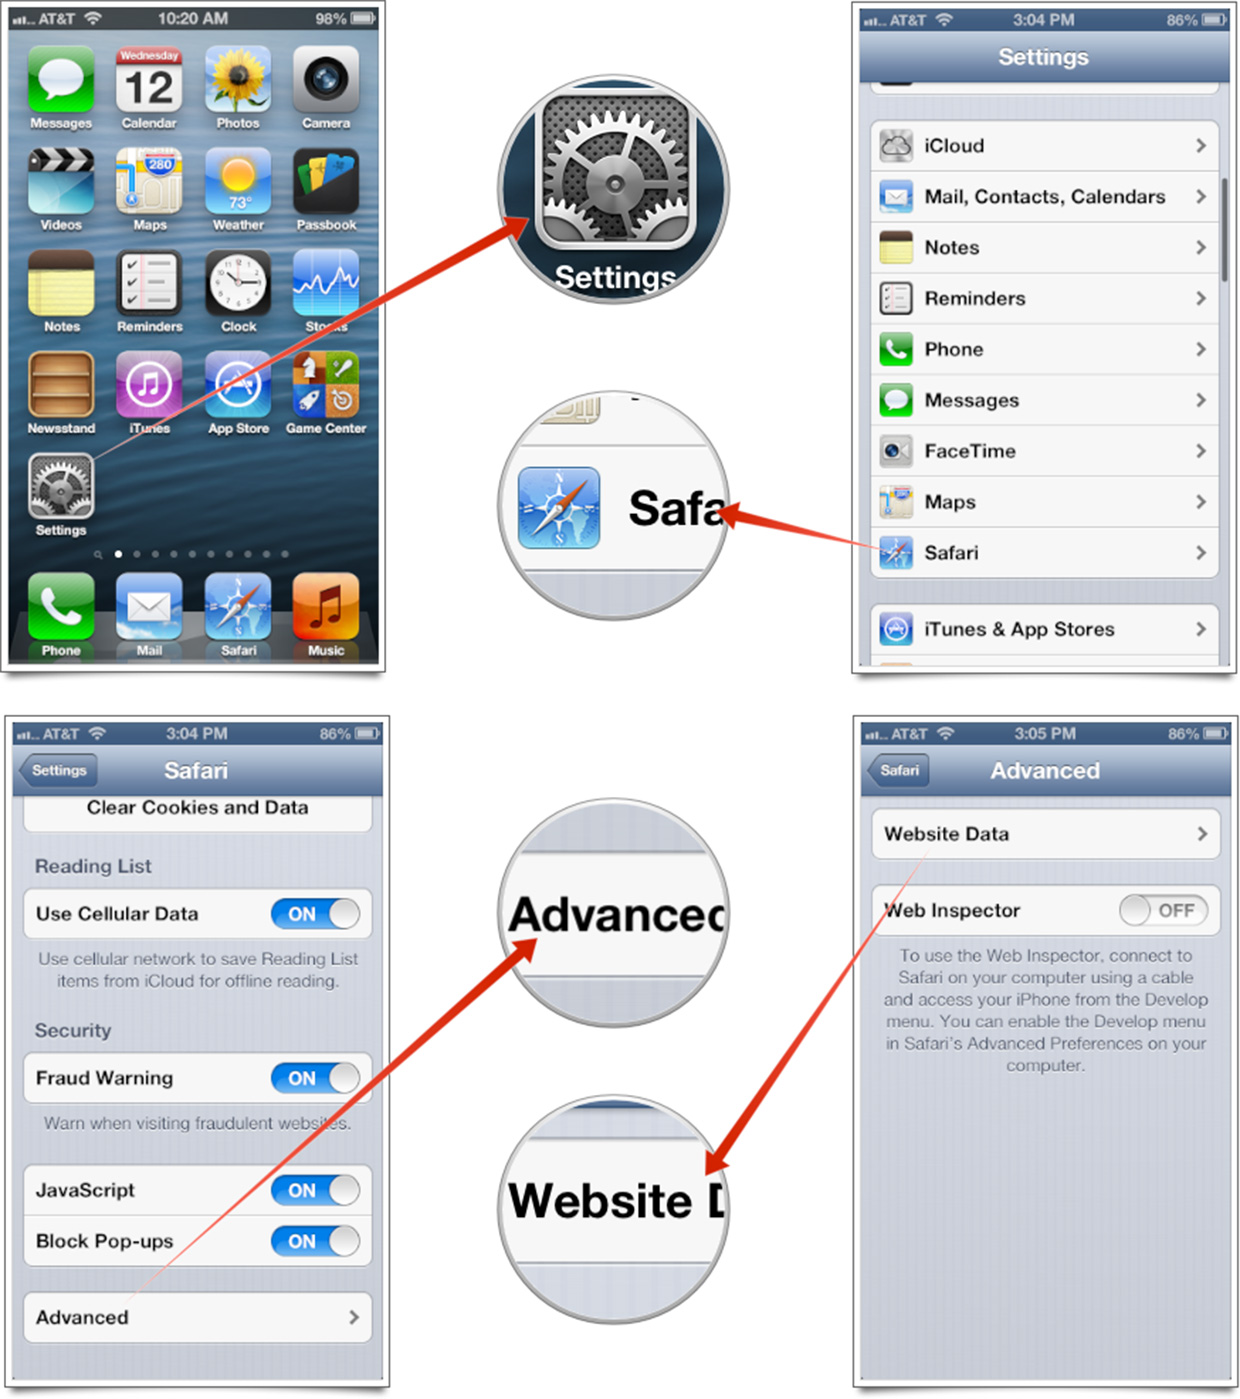 Guide to clear your website data on Safari for iPhone or iPad